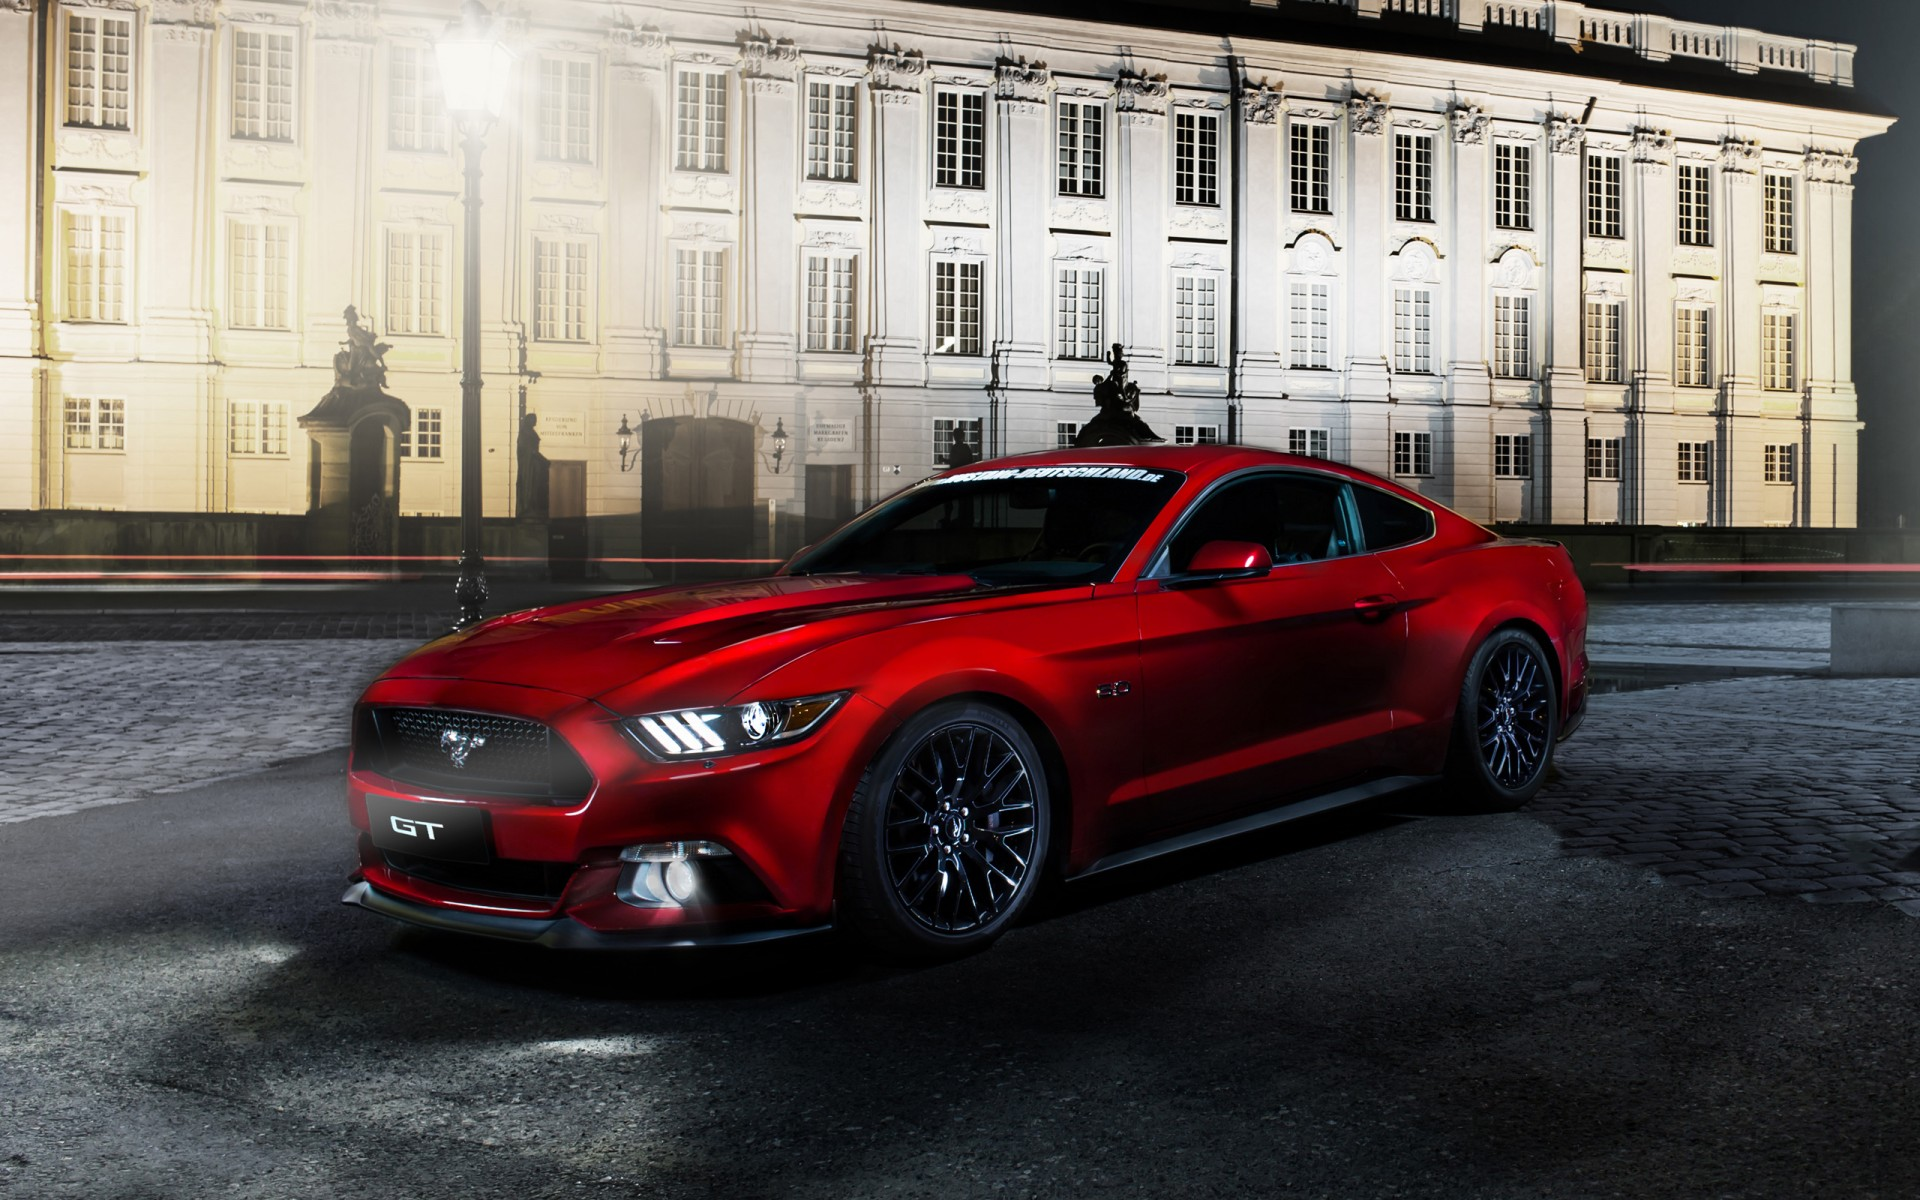 Ford Mustang GT 2015 Wallpaper | HD Car Wallpapers | ID #5461